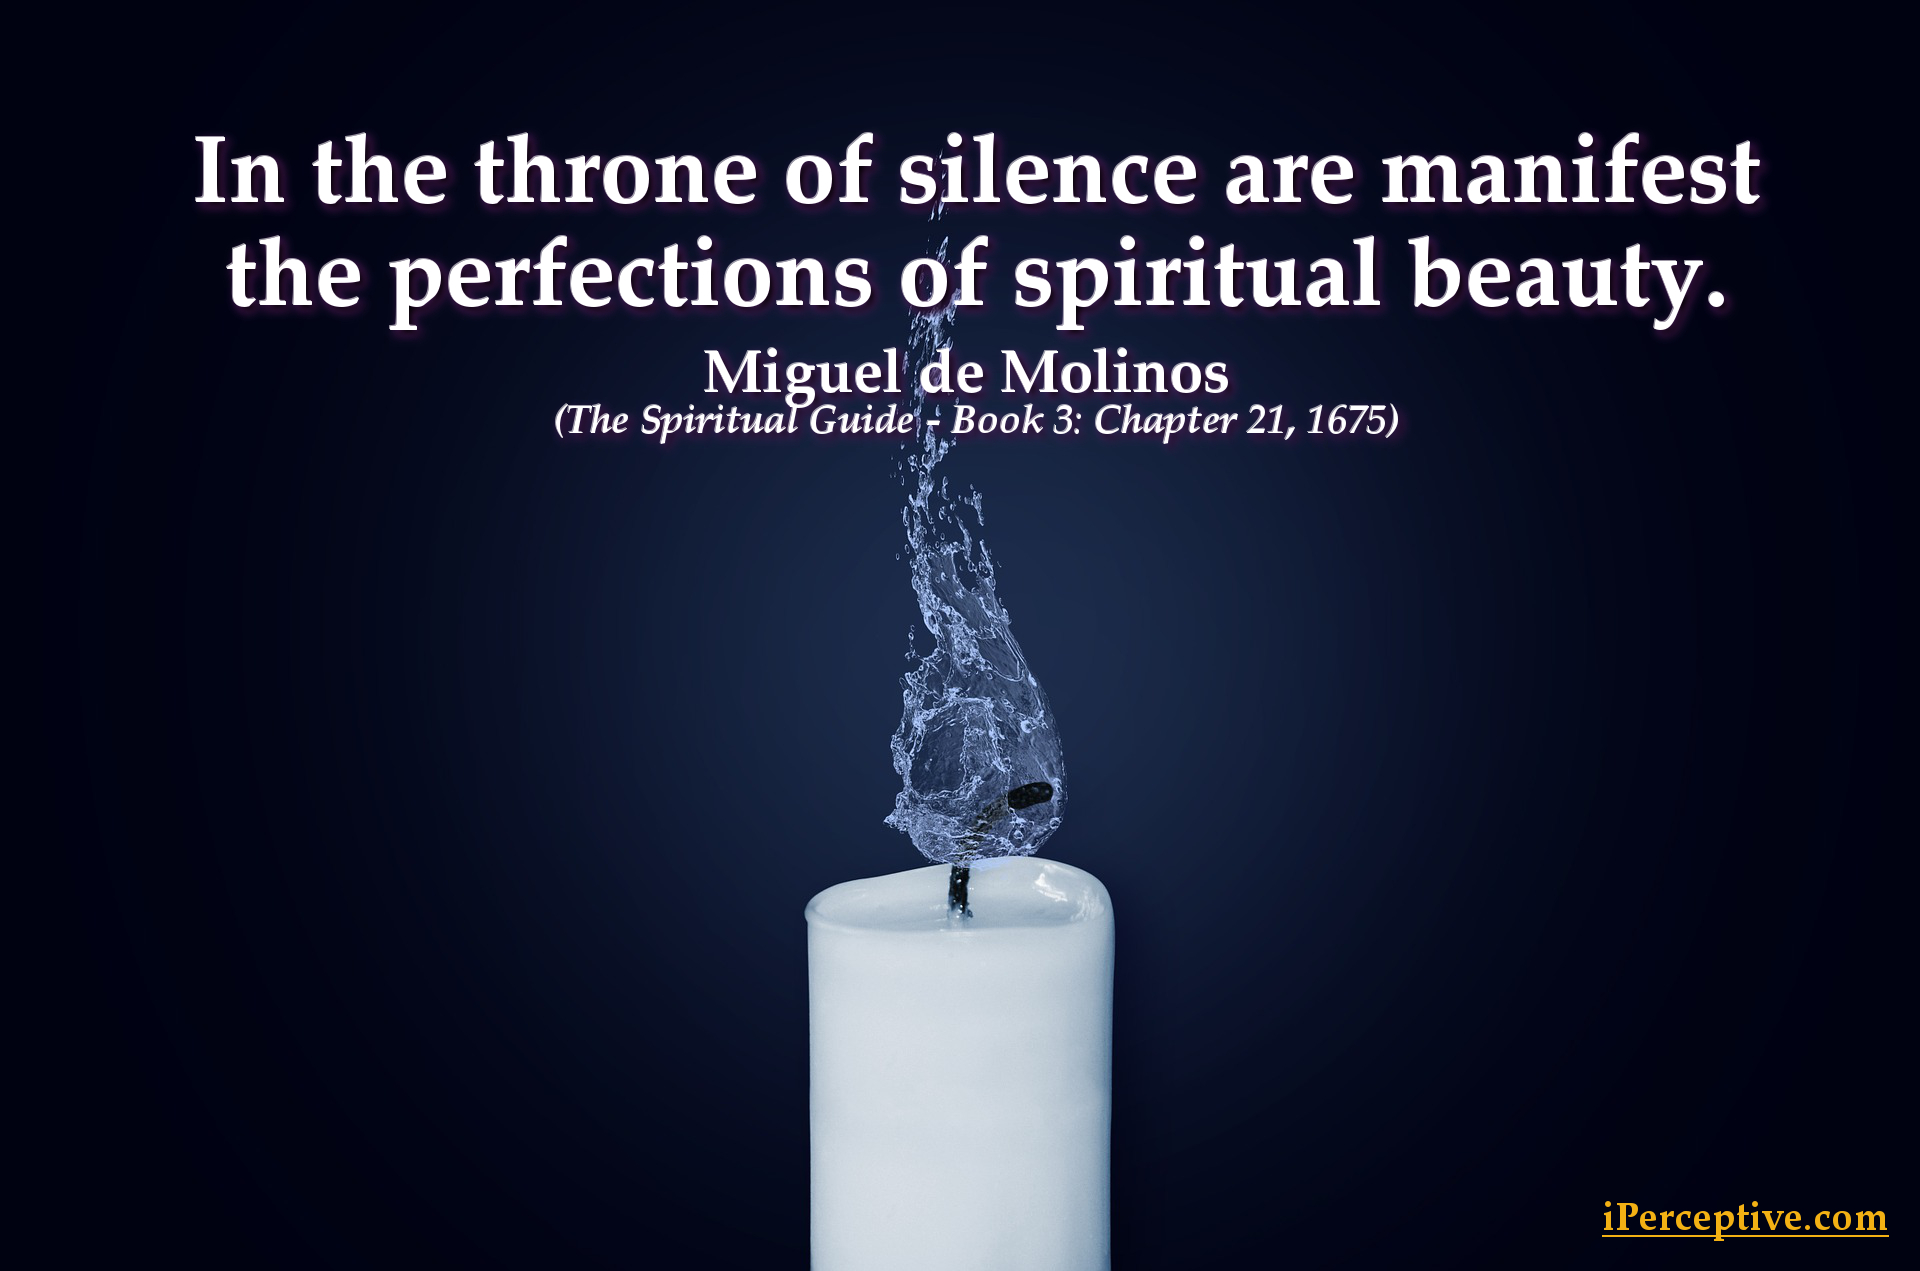 Miguel de Molinos Quote: In the throne of silence are manifest the perfections ...